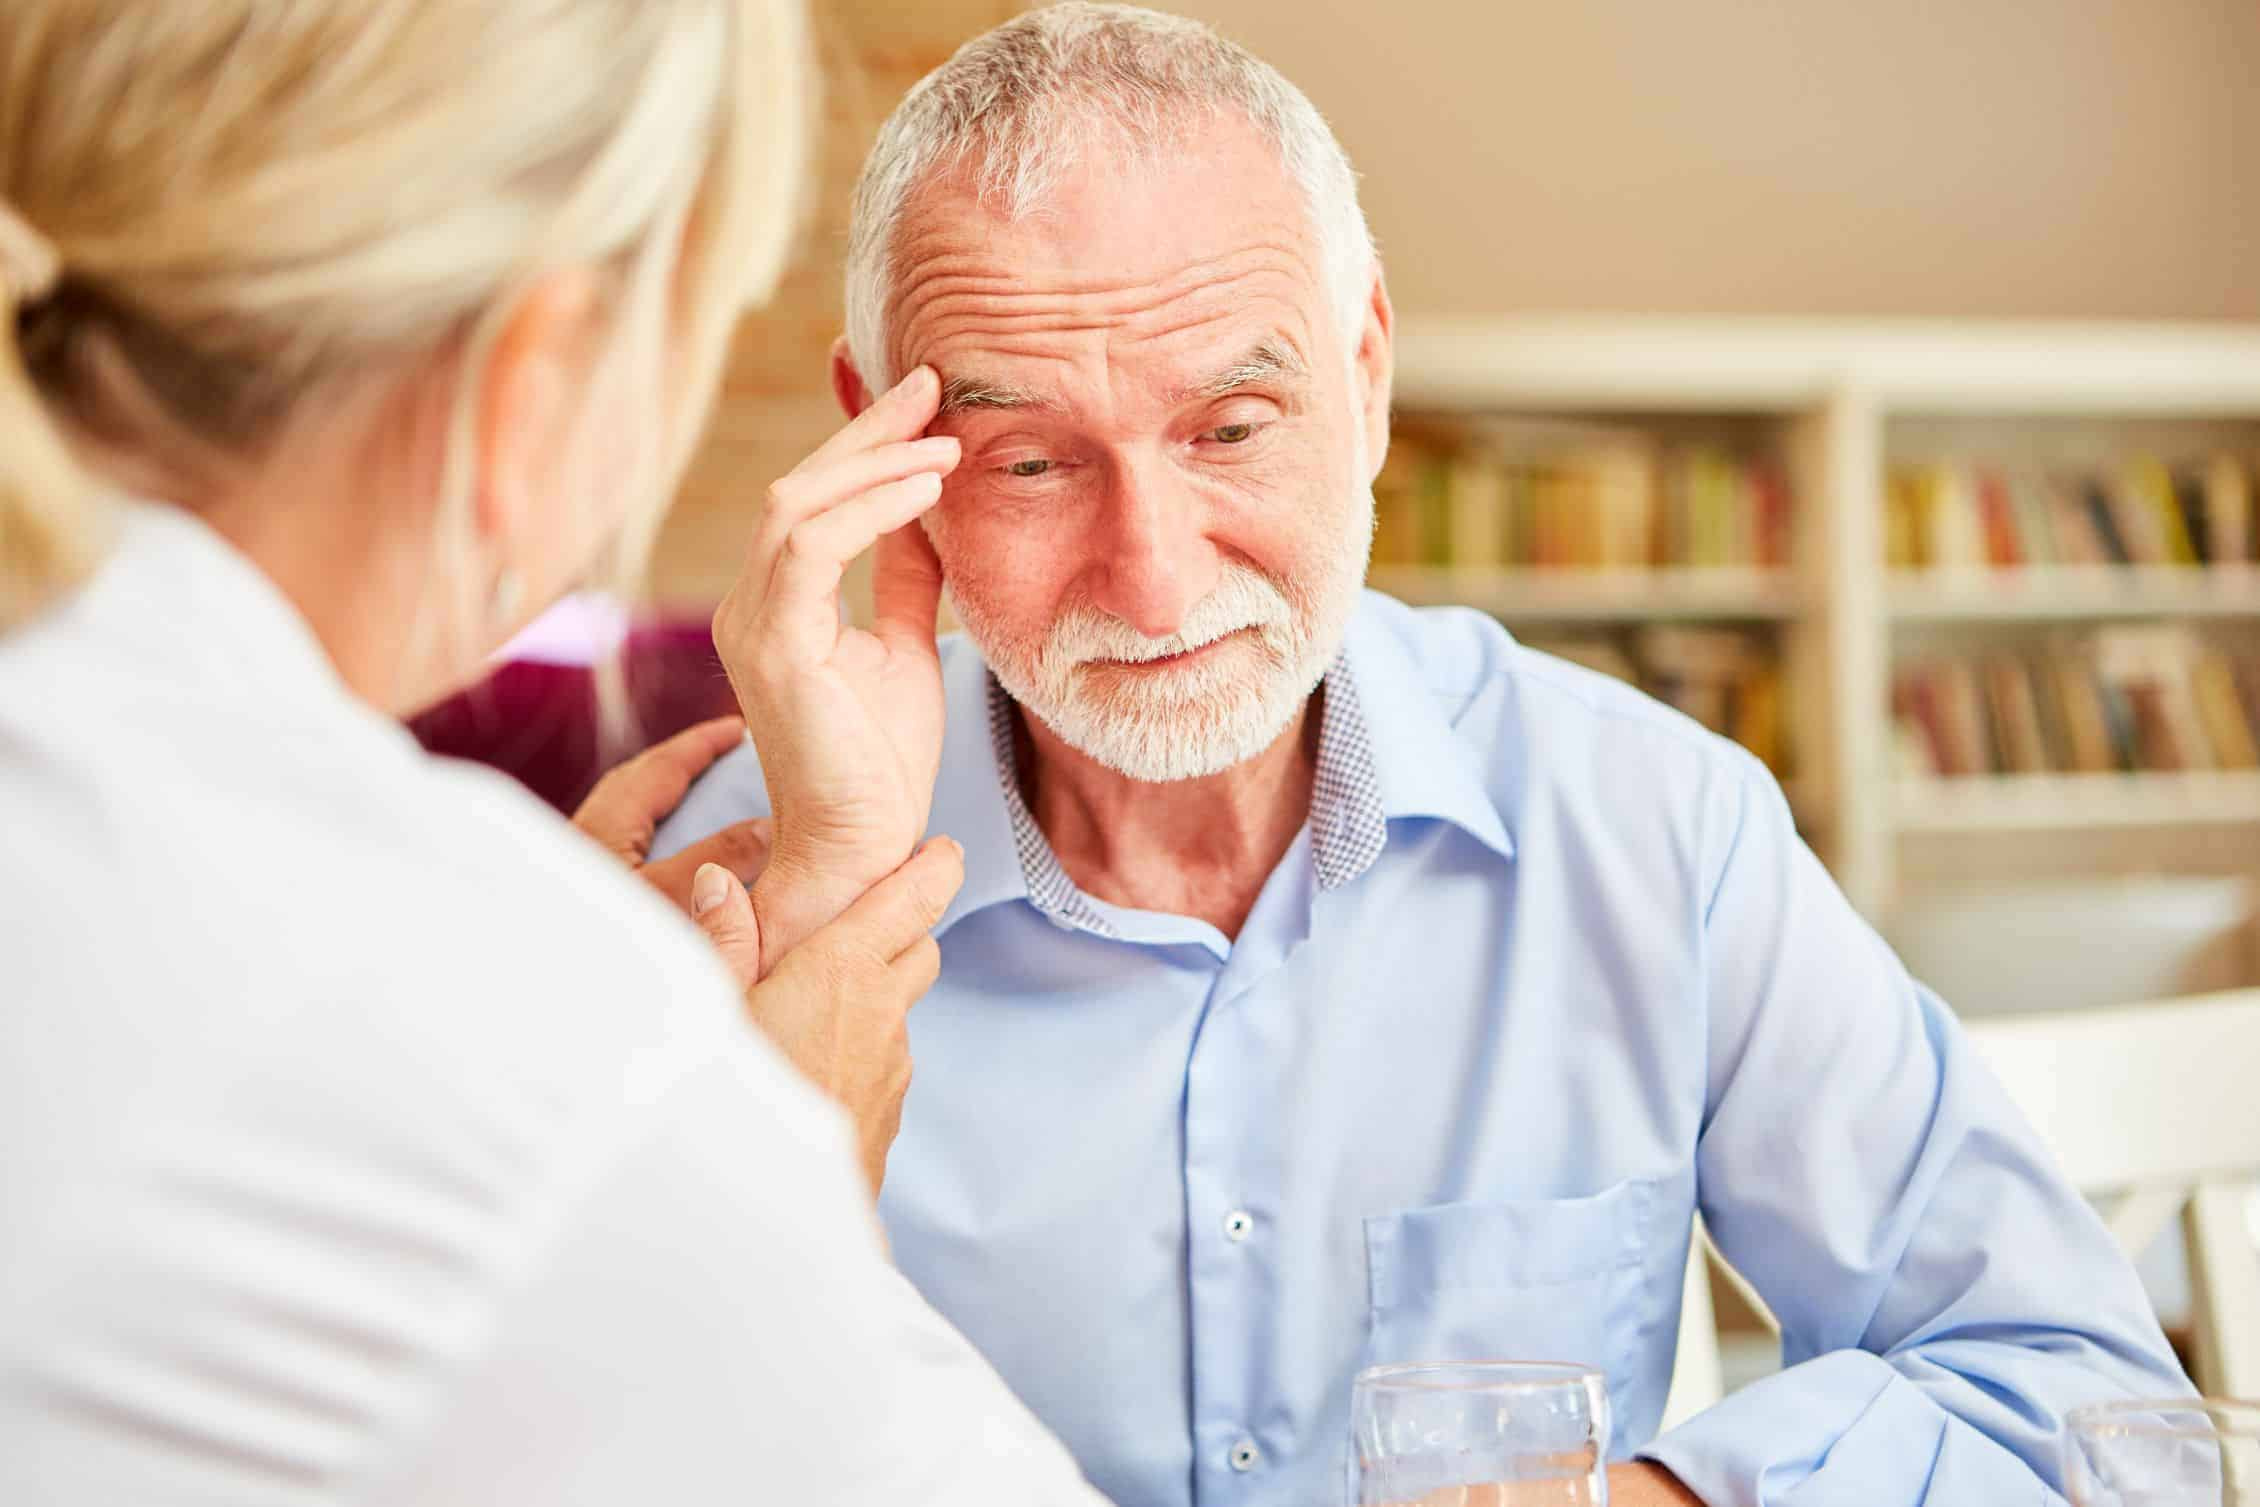 Frustrated senior struggling with dementia alzheimers